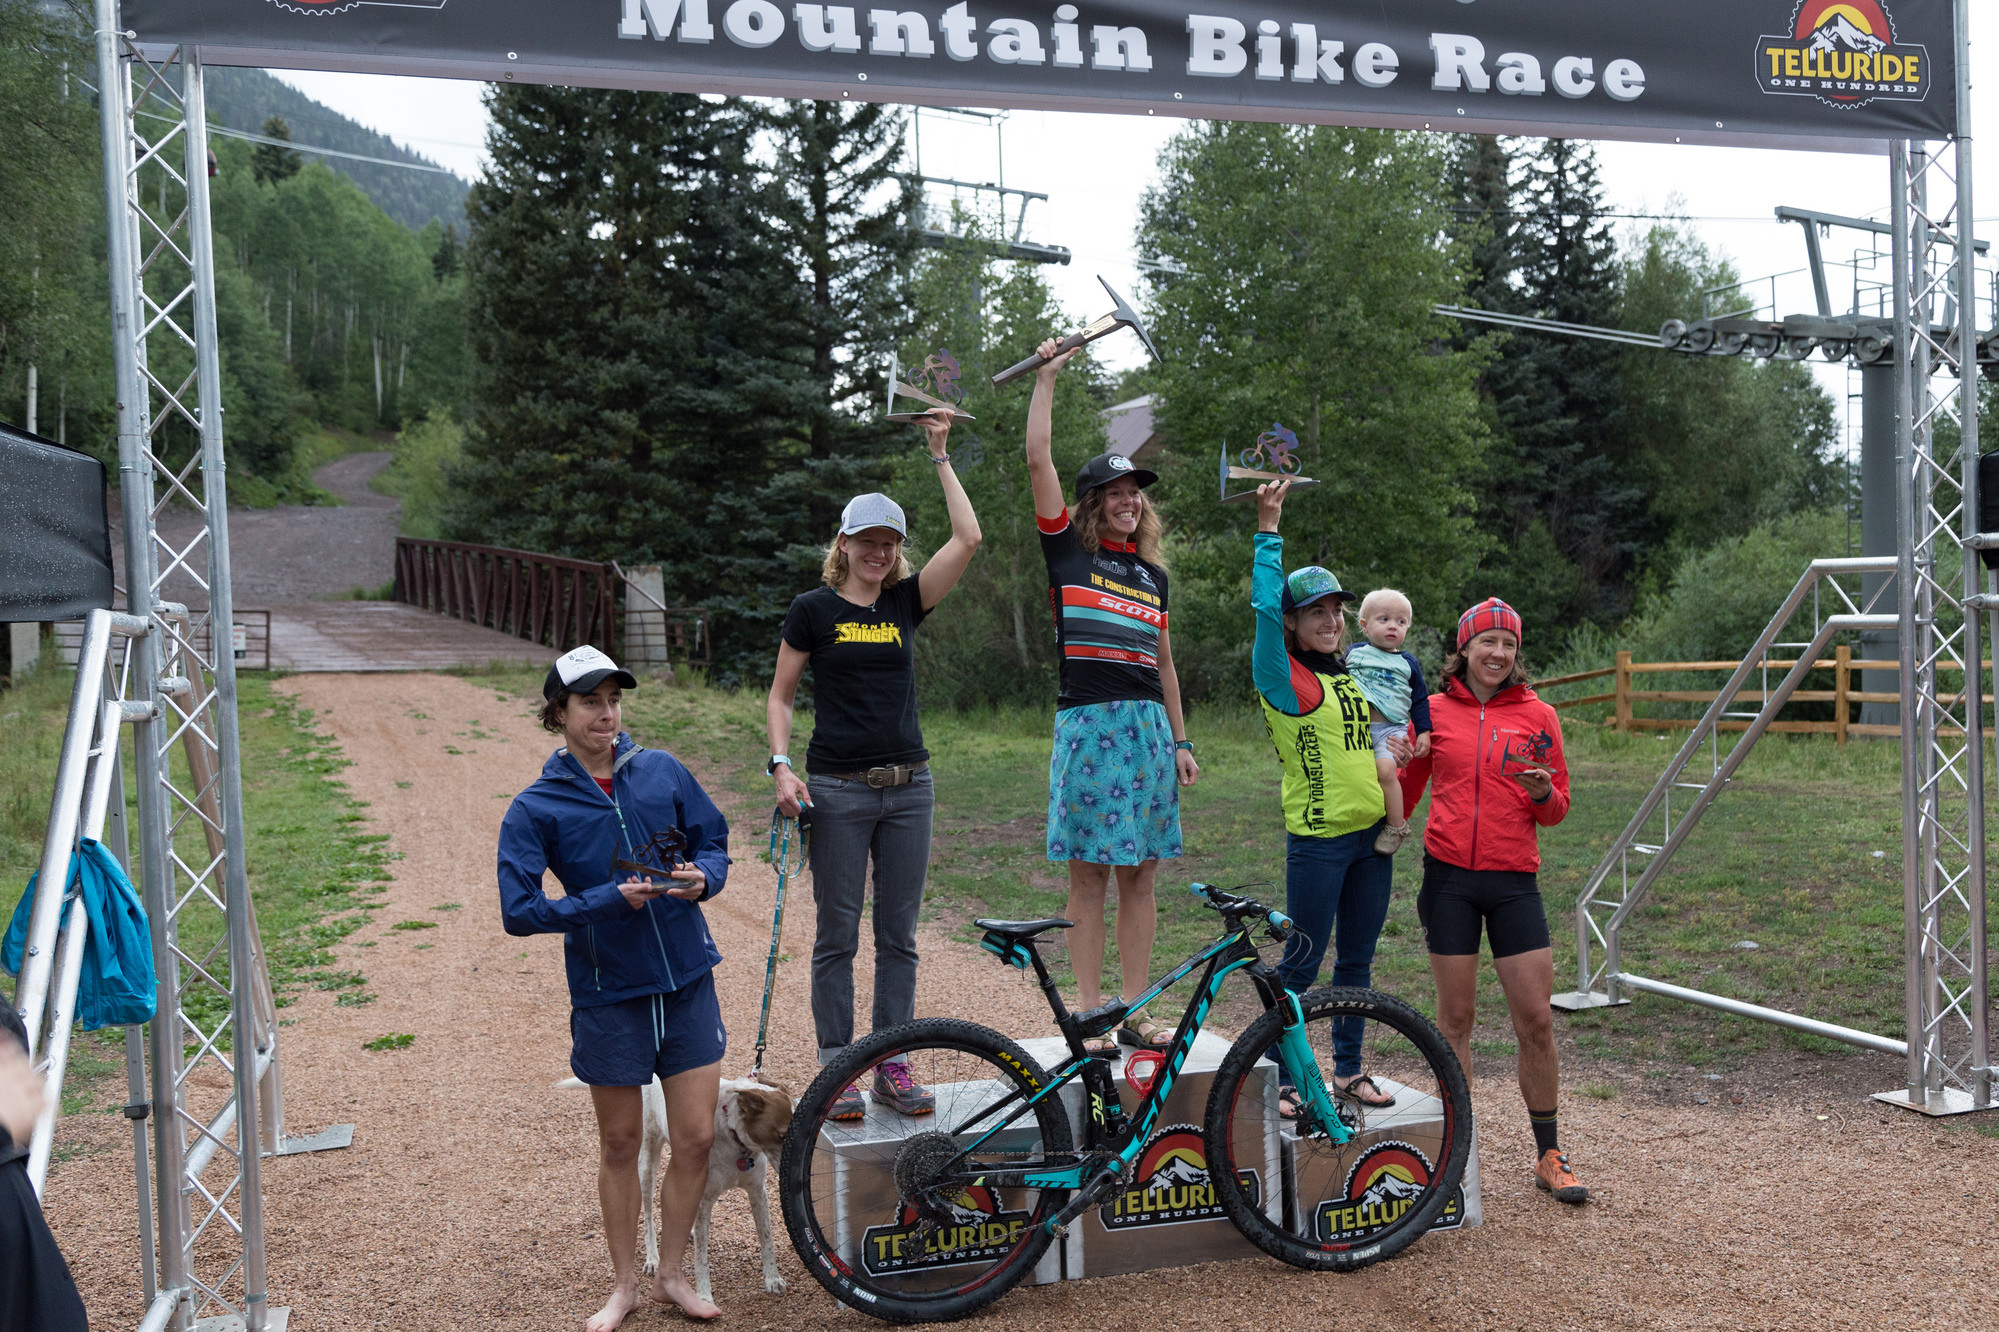 So You Want to Race 100 Miles on a Mountain Bike? Start Here